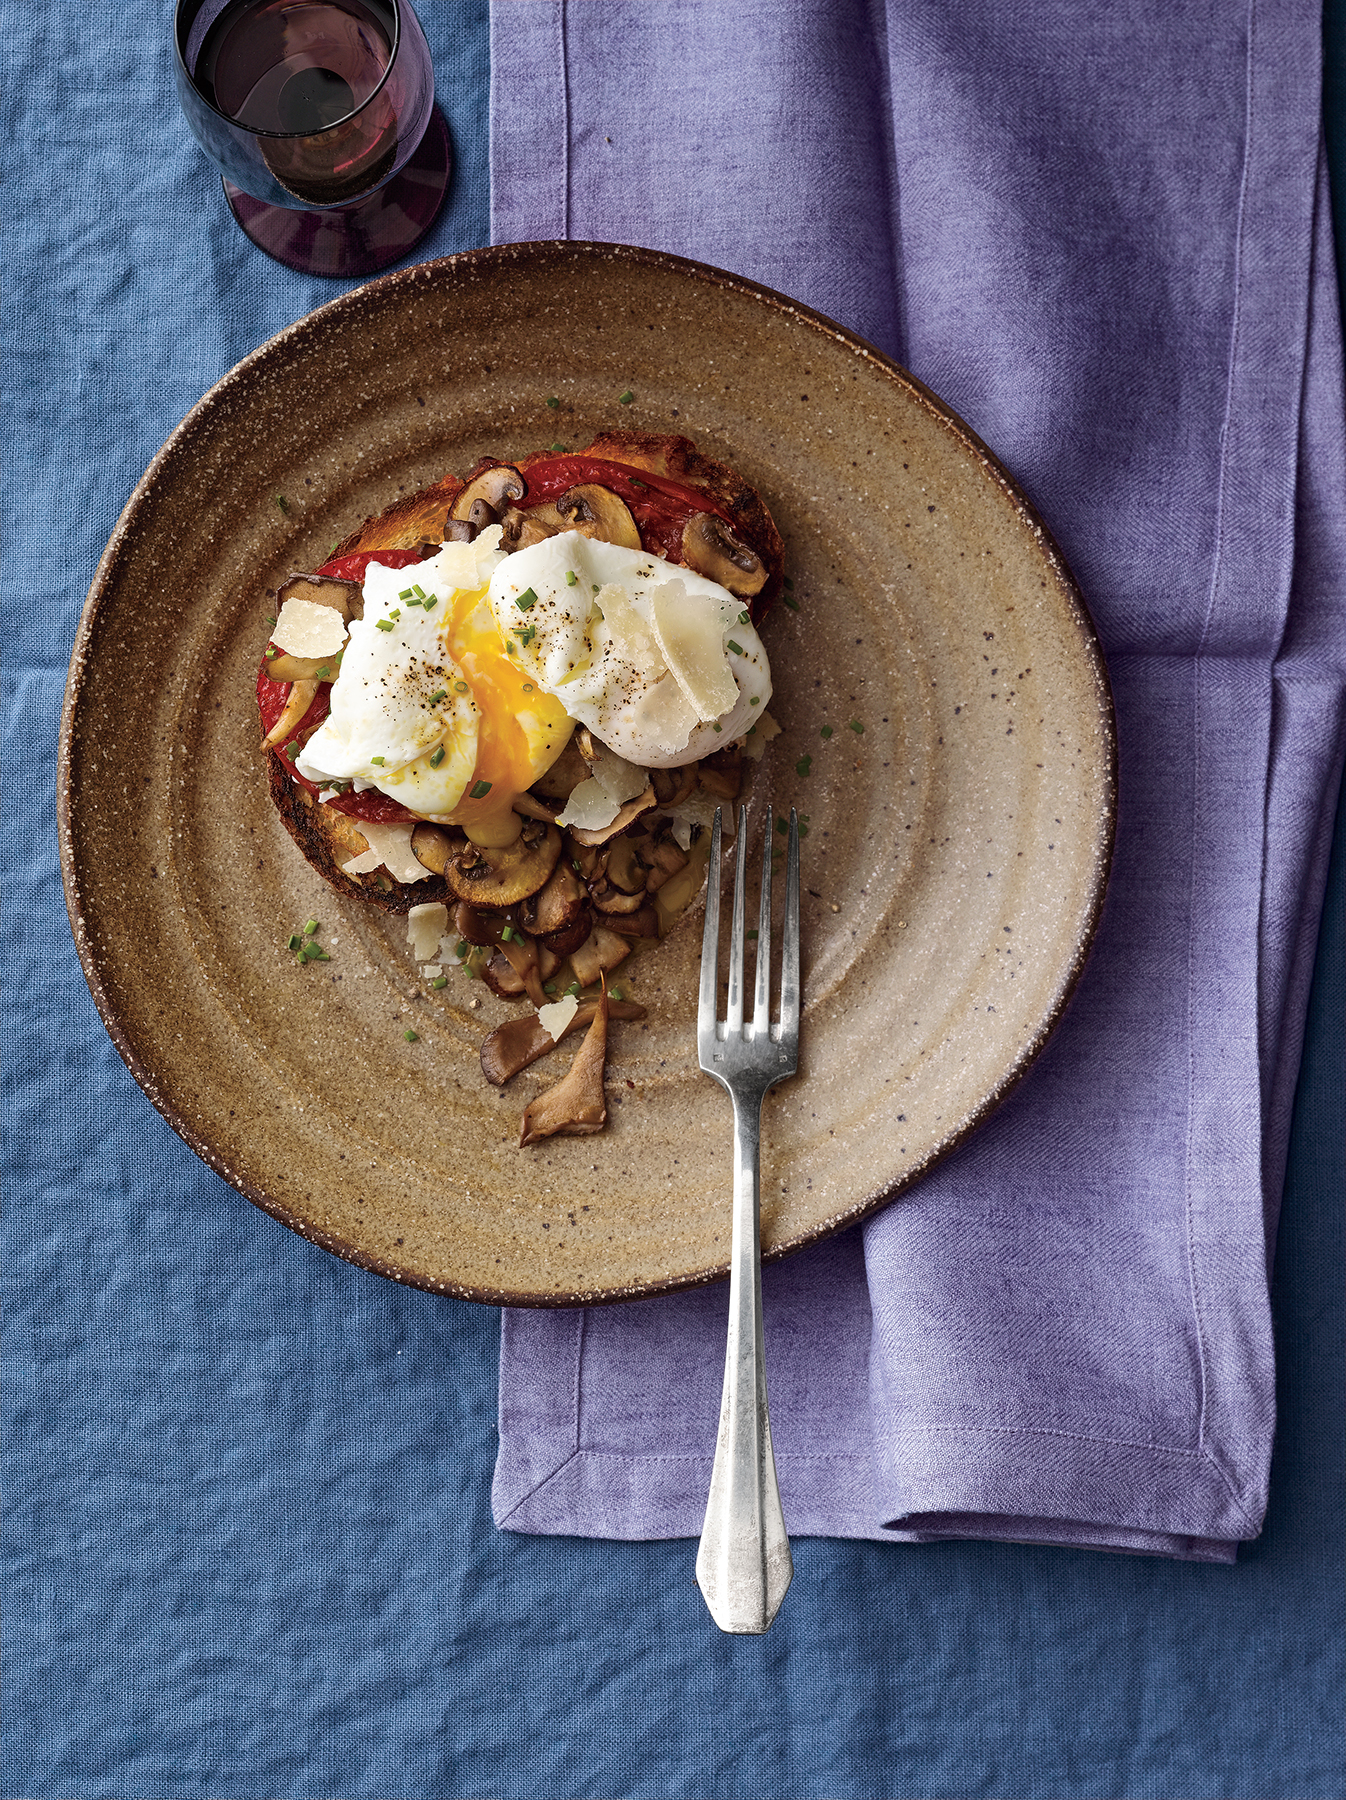 Poached Eggs With Mushrooms and Tomatoes